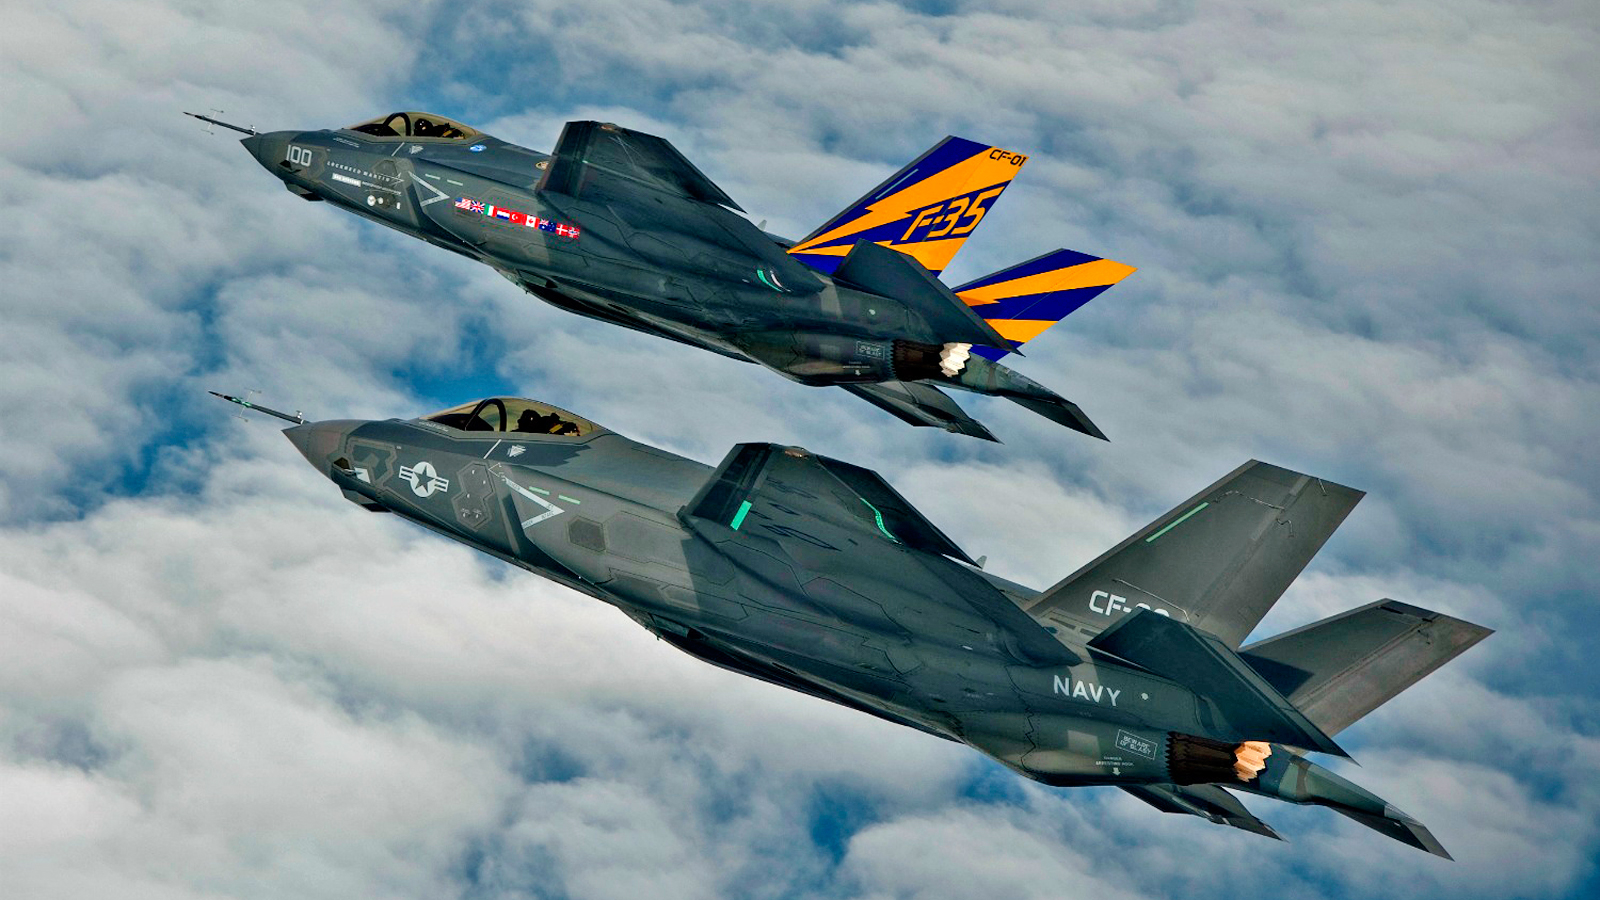 Click here to read This F-35 Formation Is So Impossibly Perfect That It Looks Computer Generated